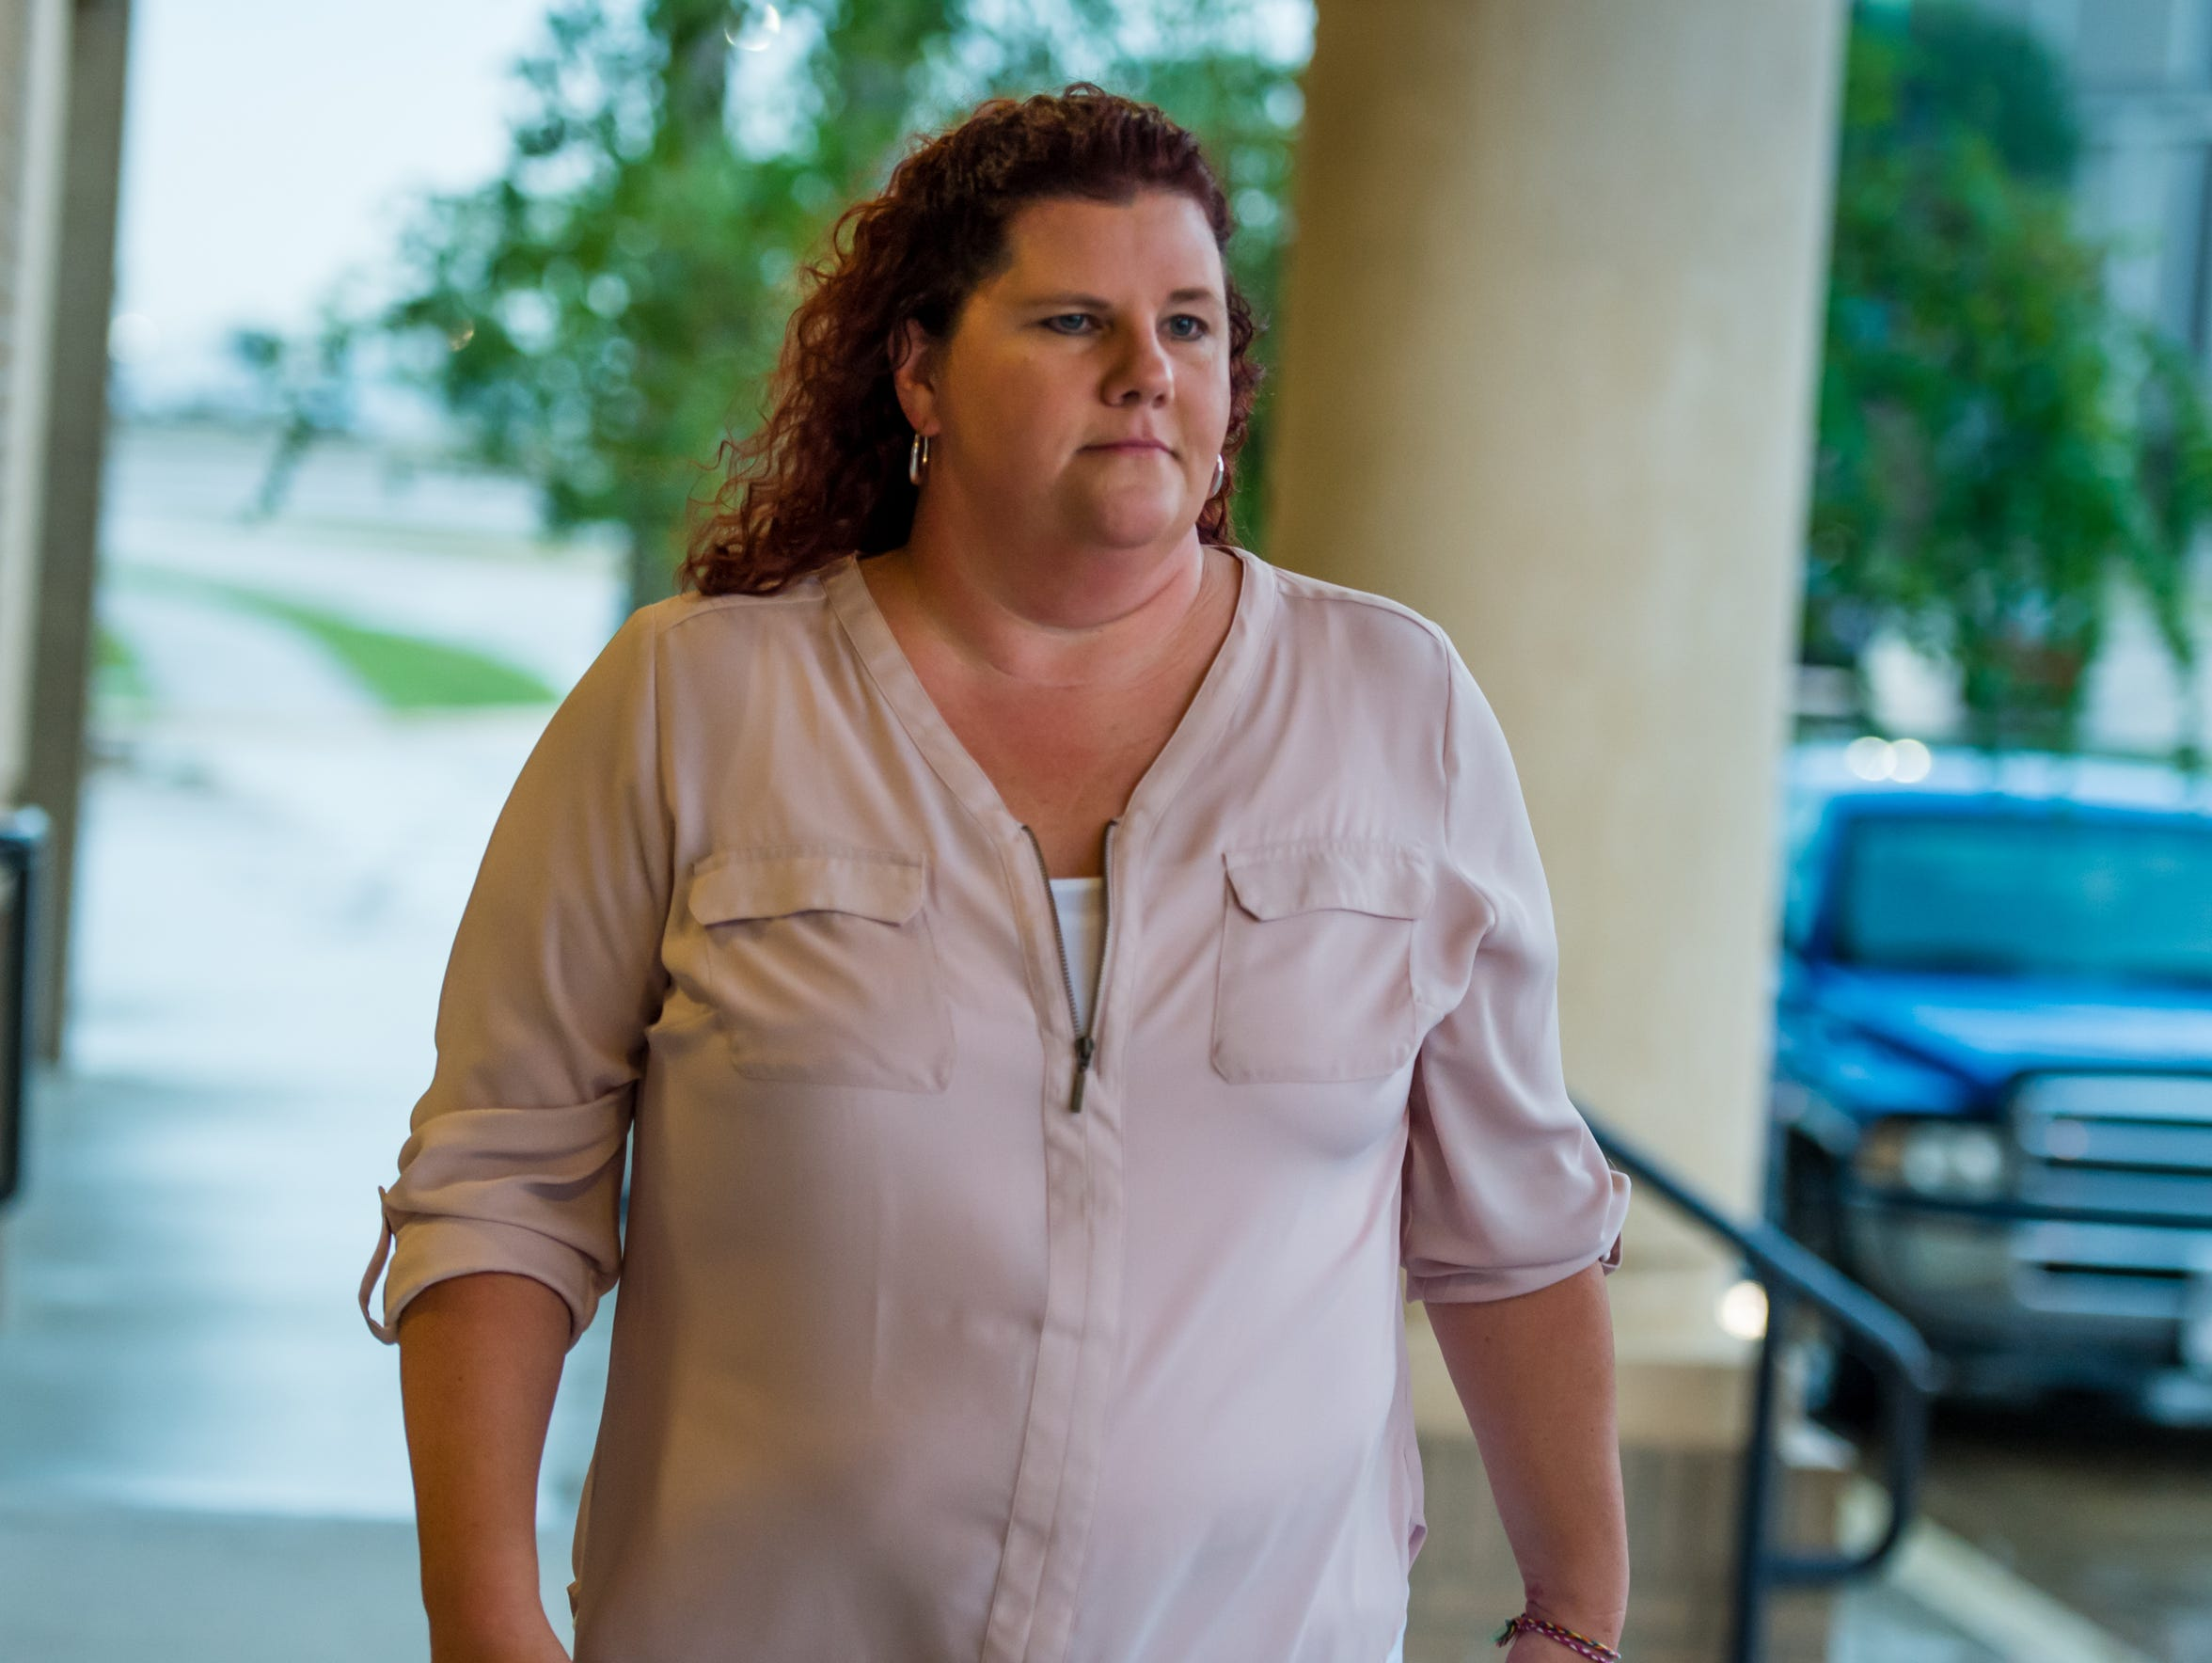 Gina Frenzel, a private investigator in Texas, testified